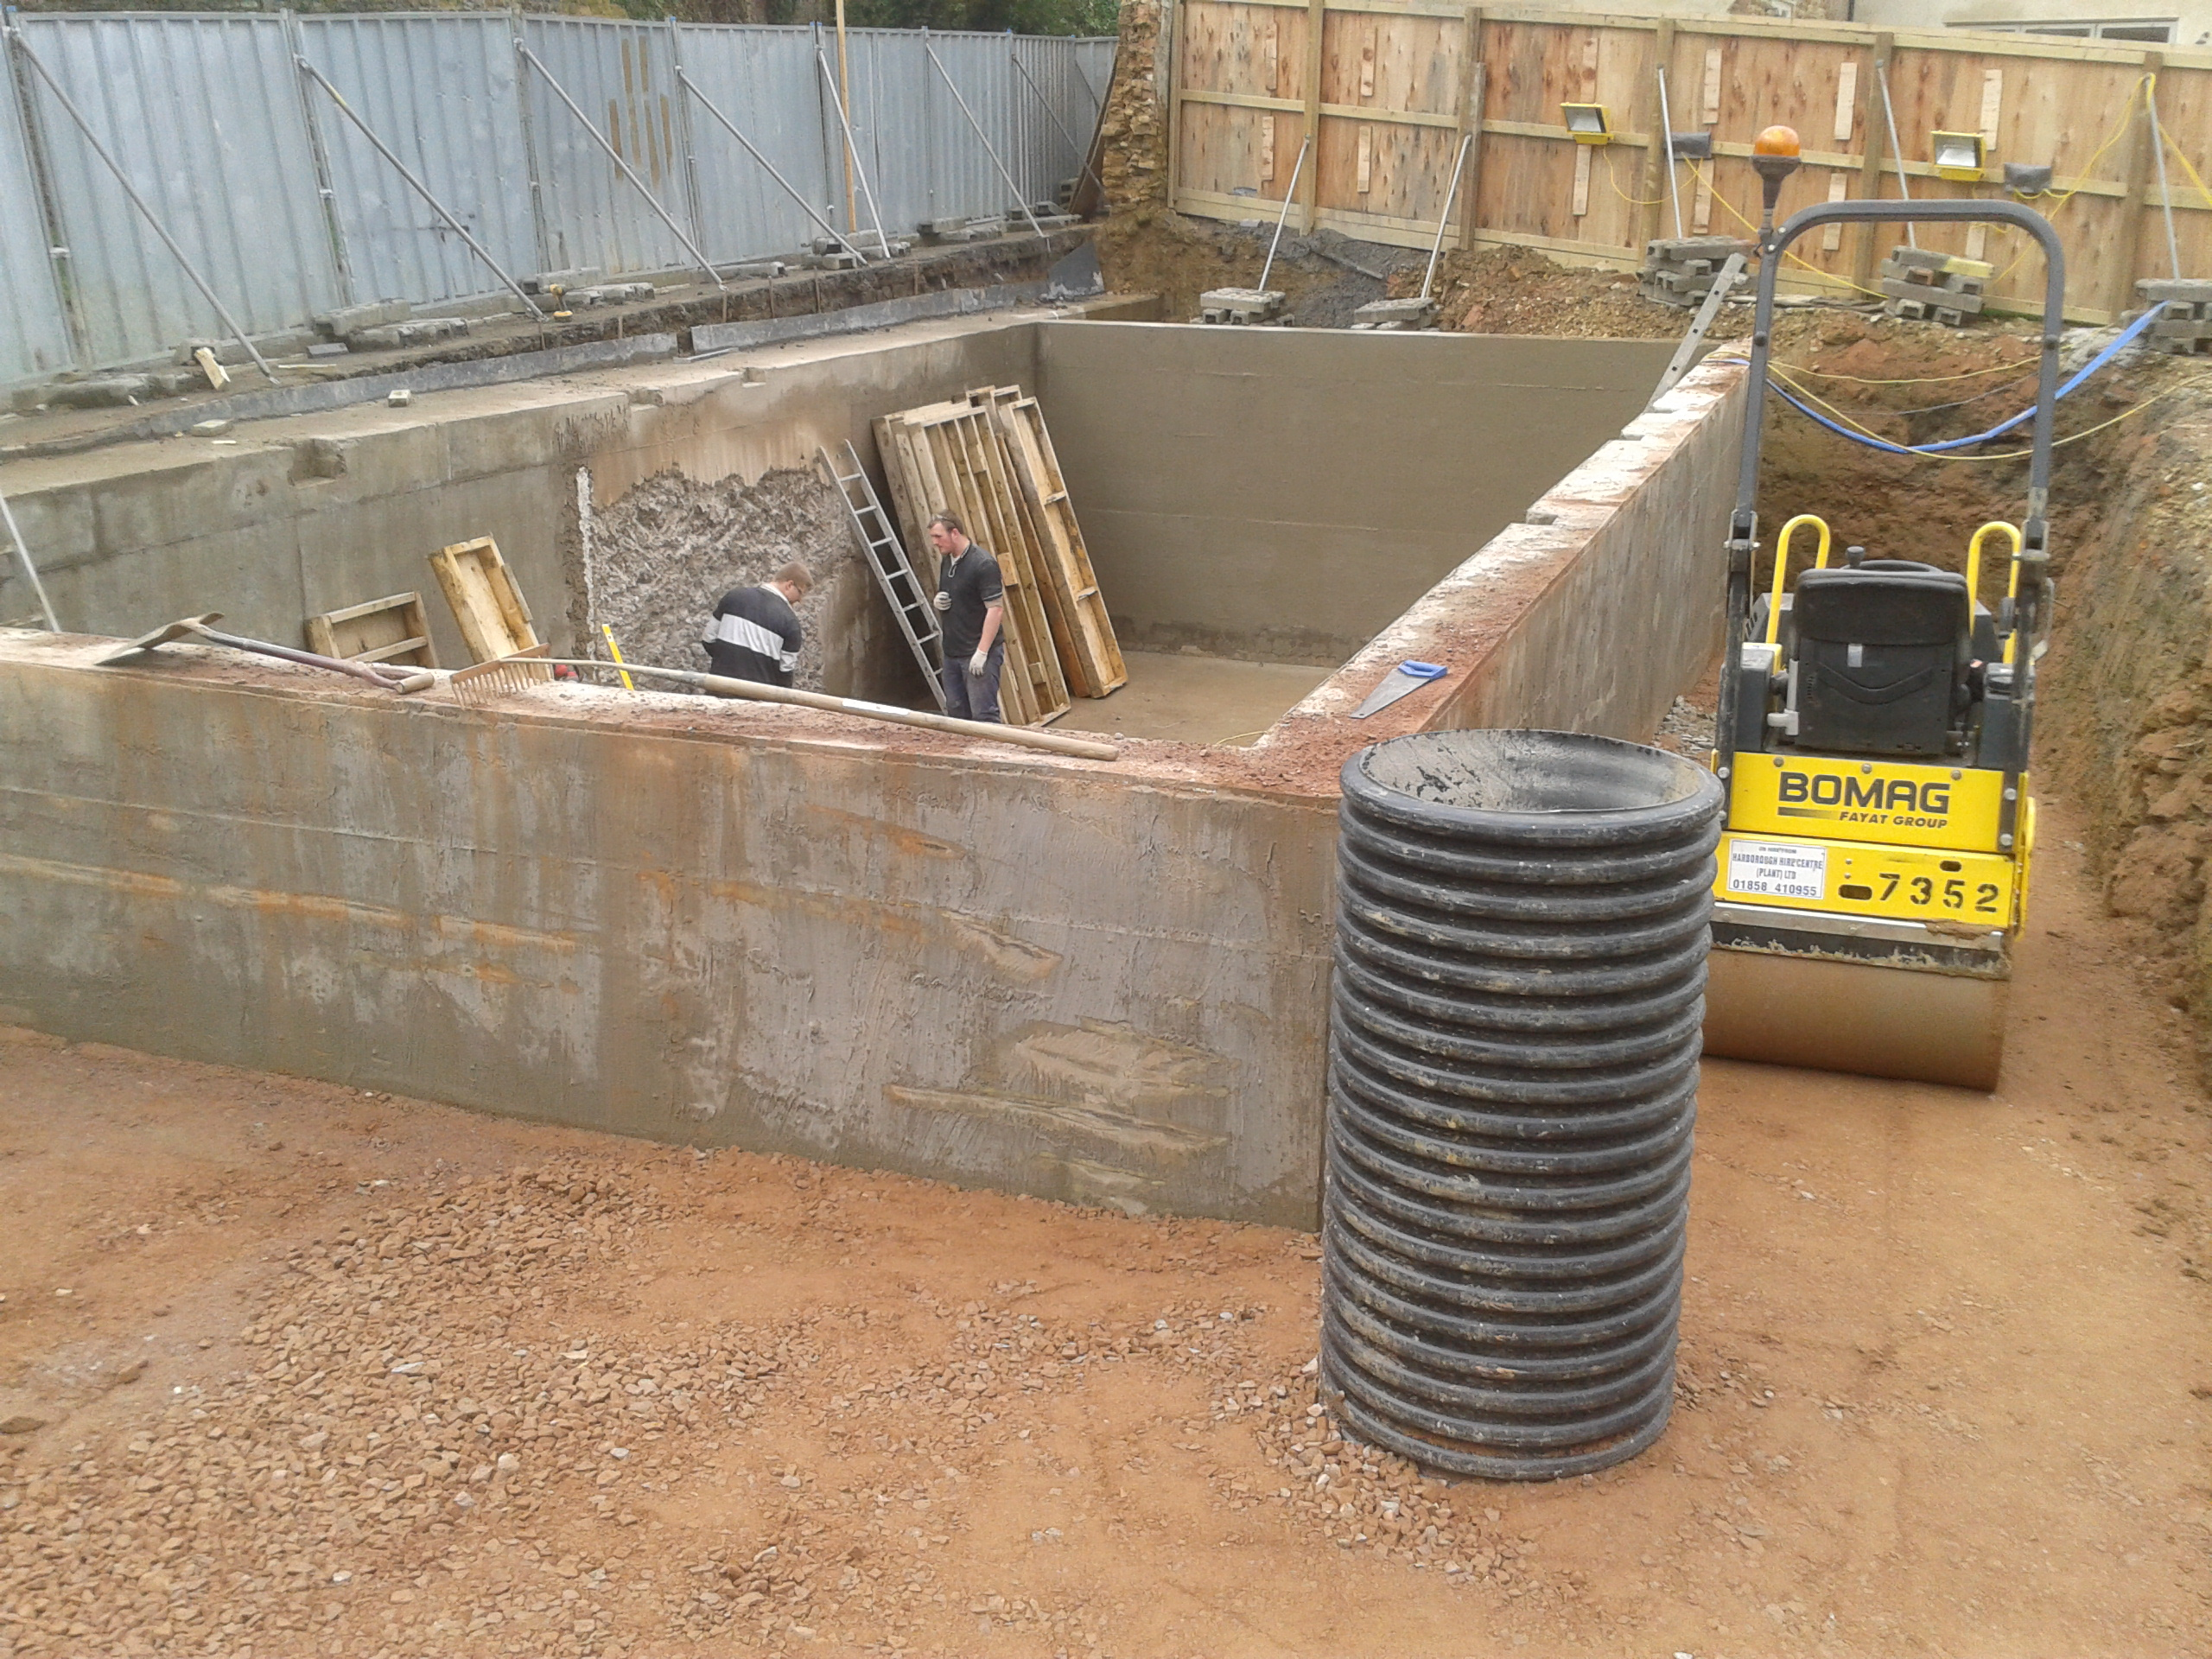 External sump permanently dewatering the site